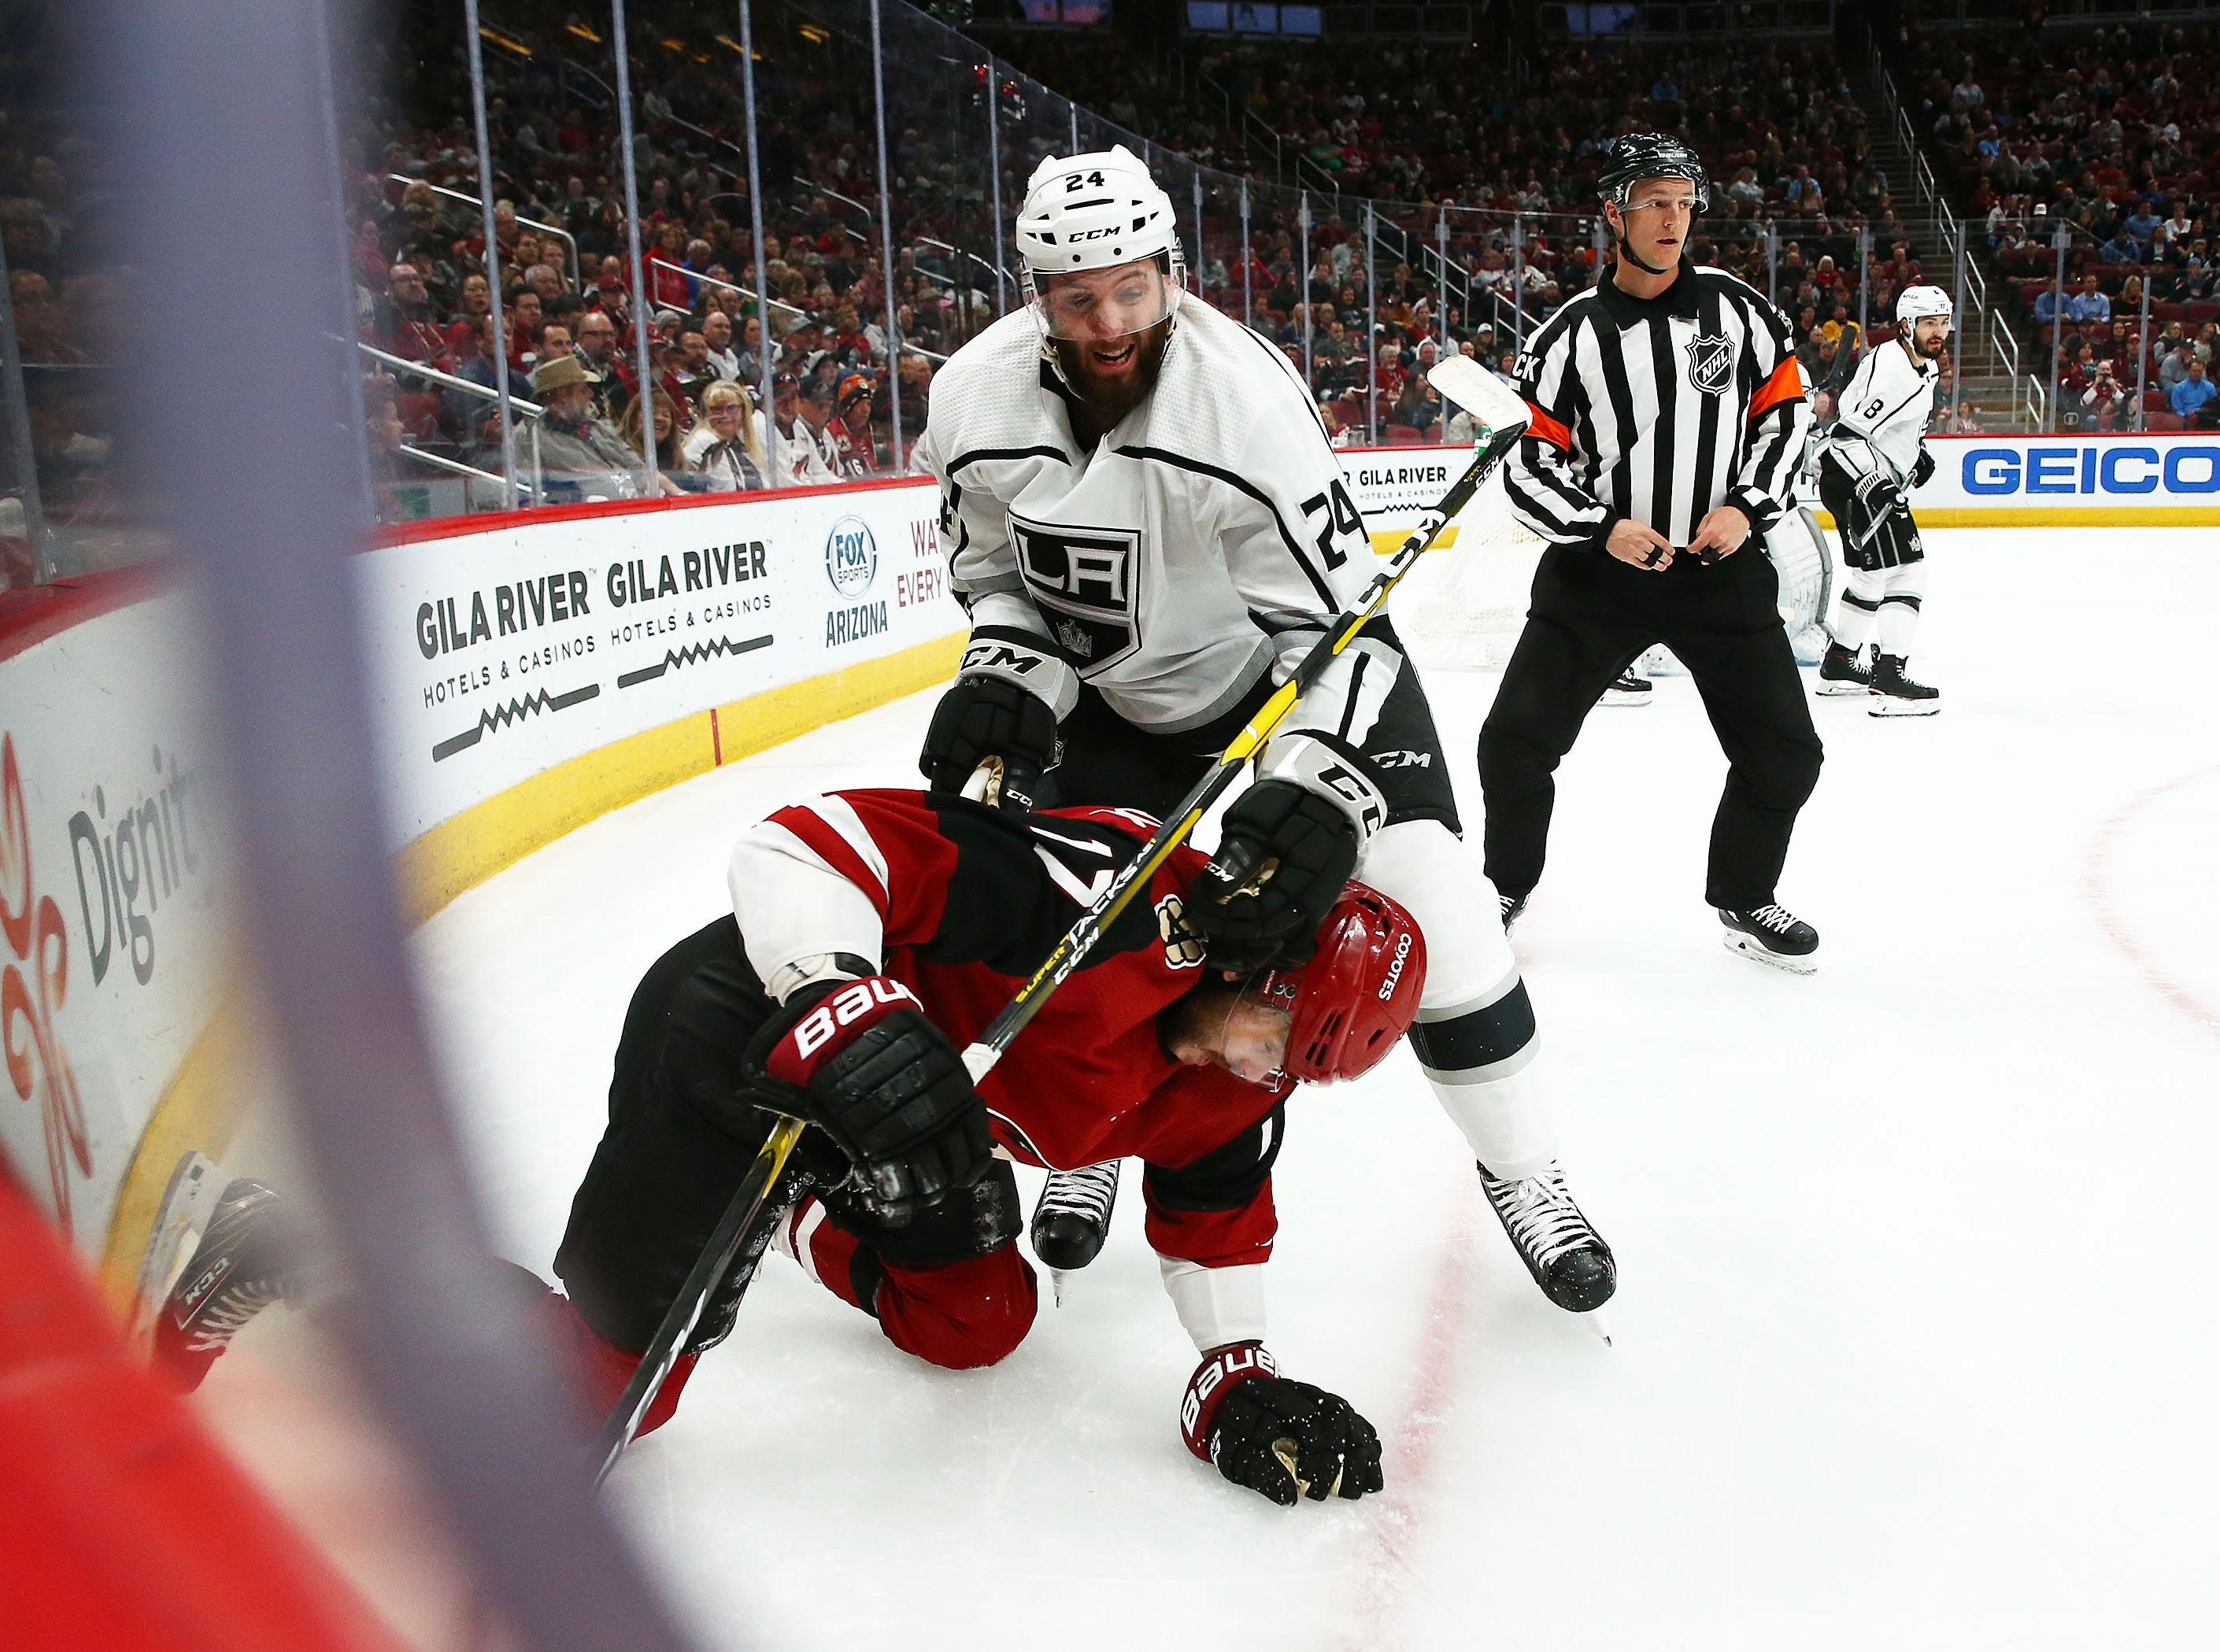 Los Angeles Kings defenseman Derek Forbort (24) pushes Arizona Coyotes center Alex Galchenyuk (17) to the ice in the second period on Apr. 2, 2019 at Gila River Arena in Glendale, Ariz.